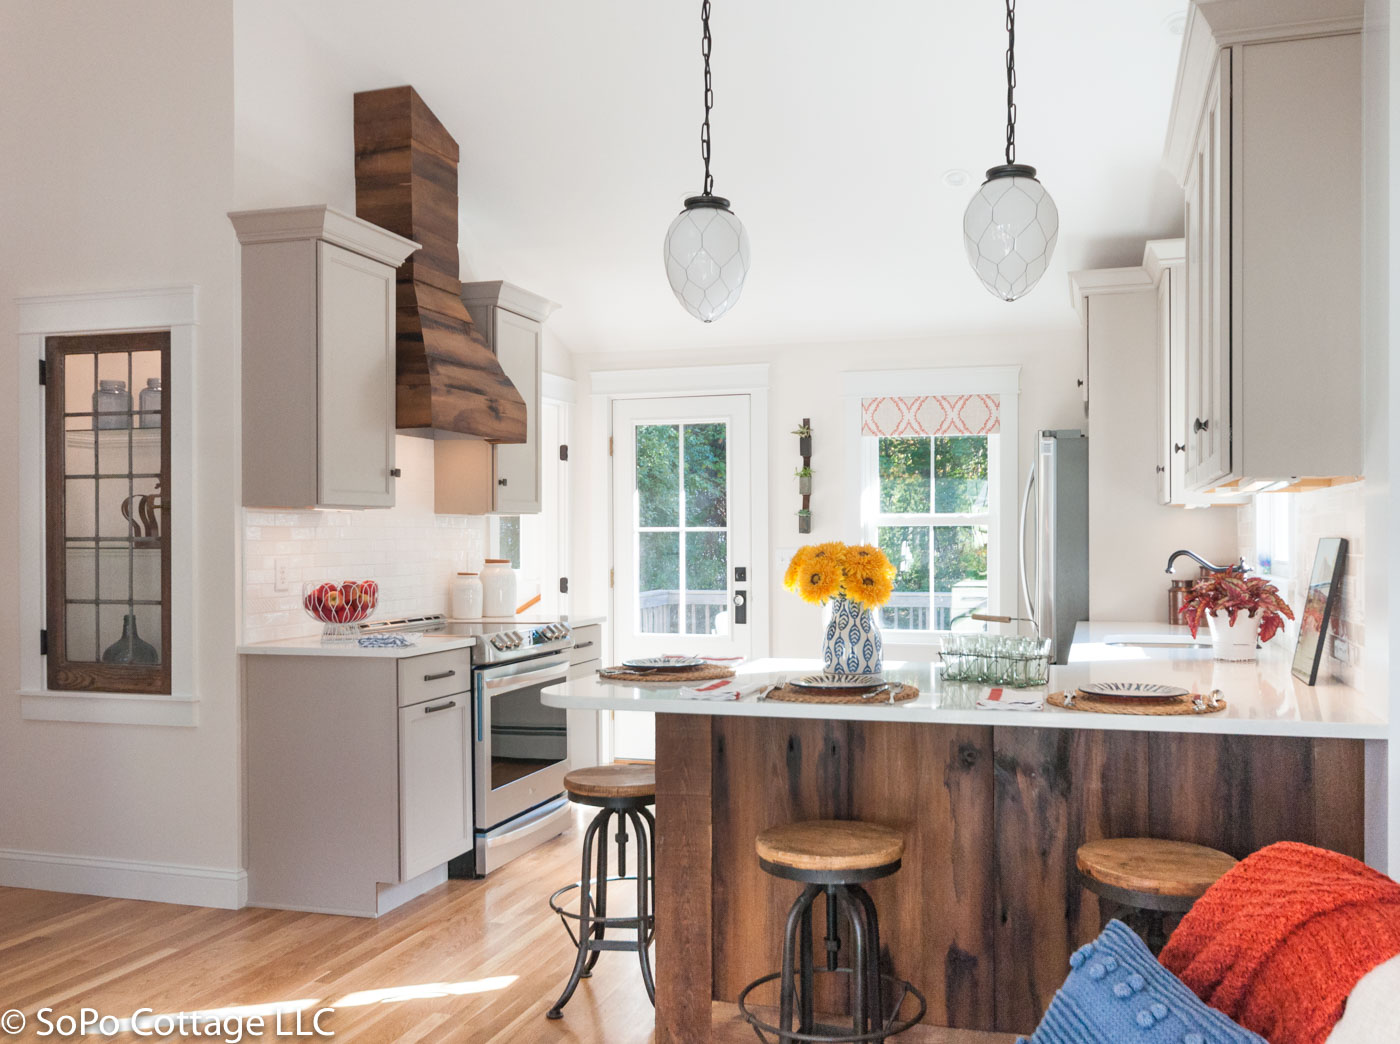 Kitchens With Tall Ceilings. Best Kitchens With Tall Ceilings With ...